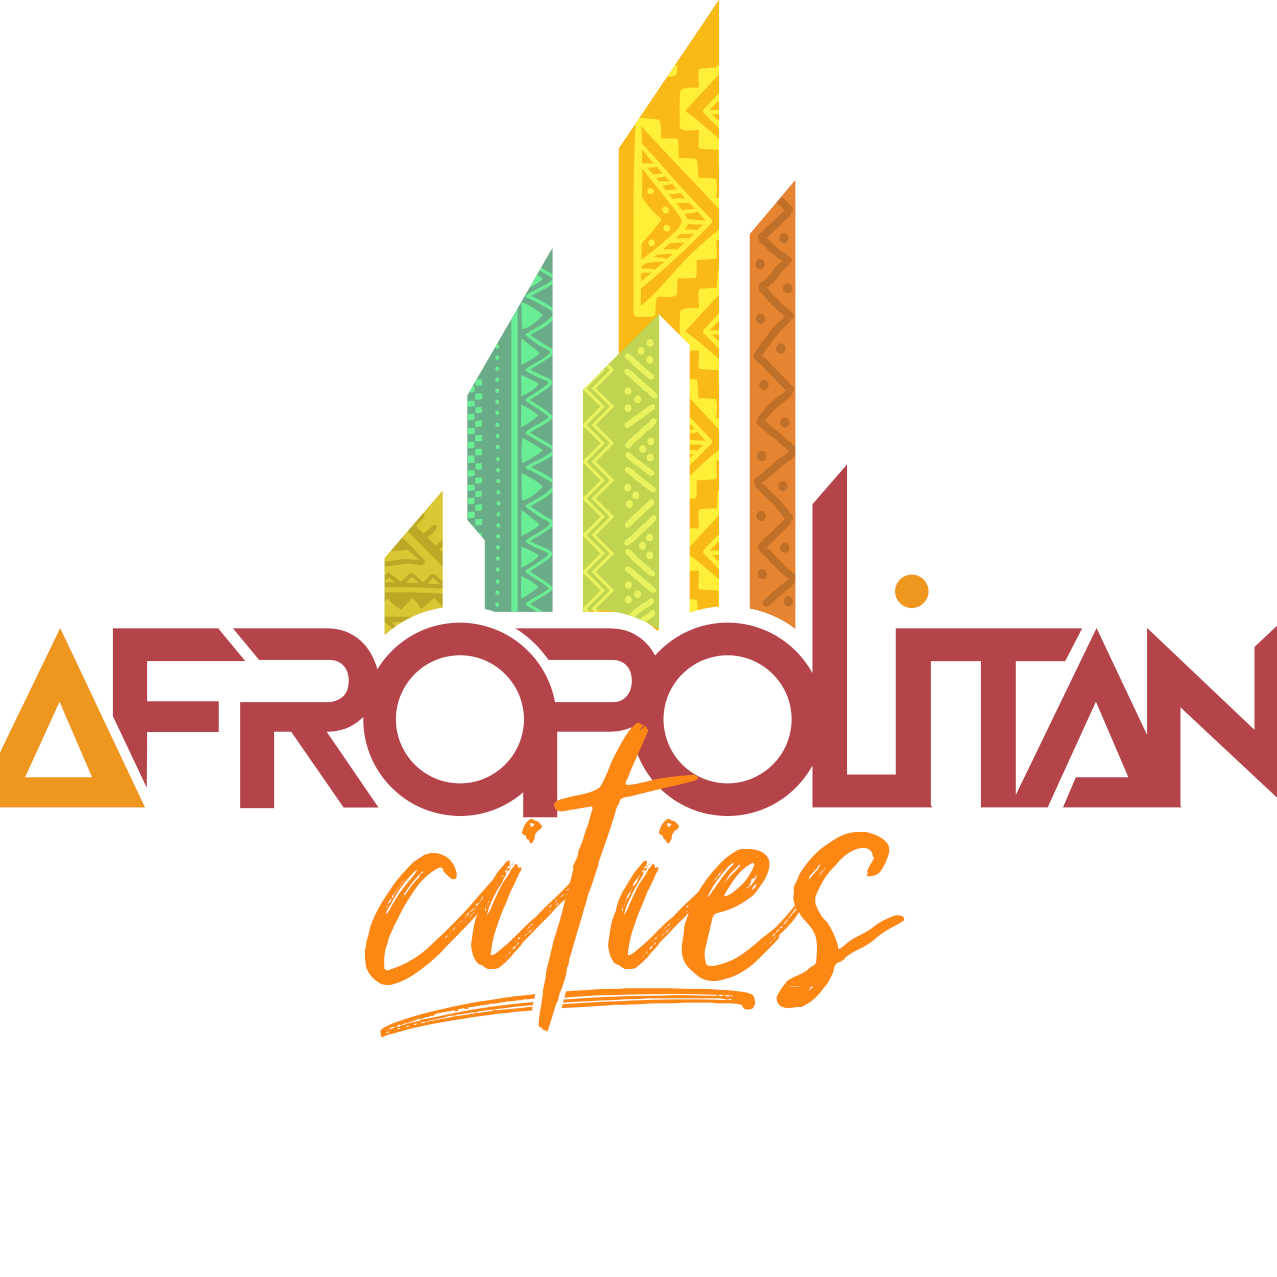 #8 – Bonus: Uncut Interview w/ Afropolitan Cities